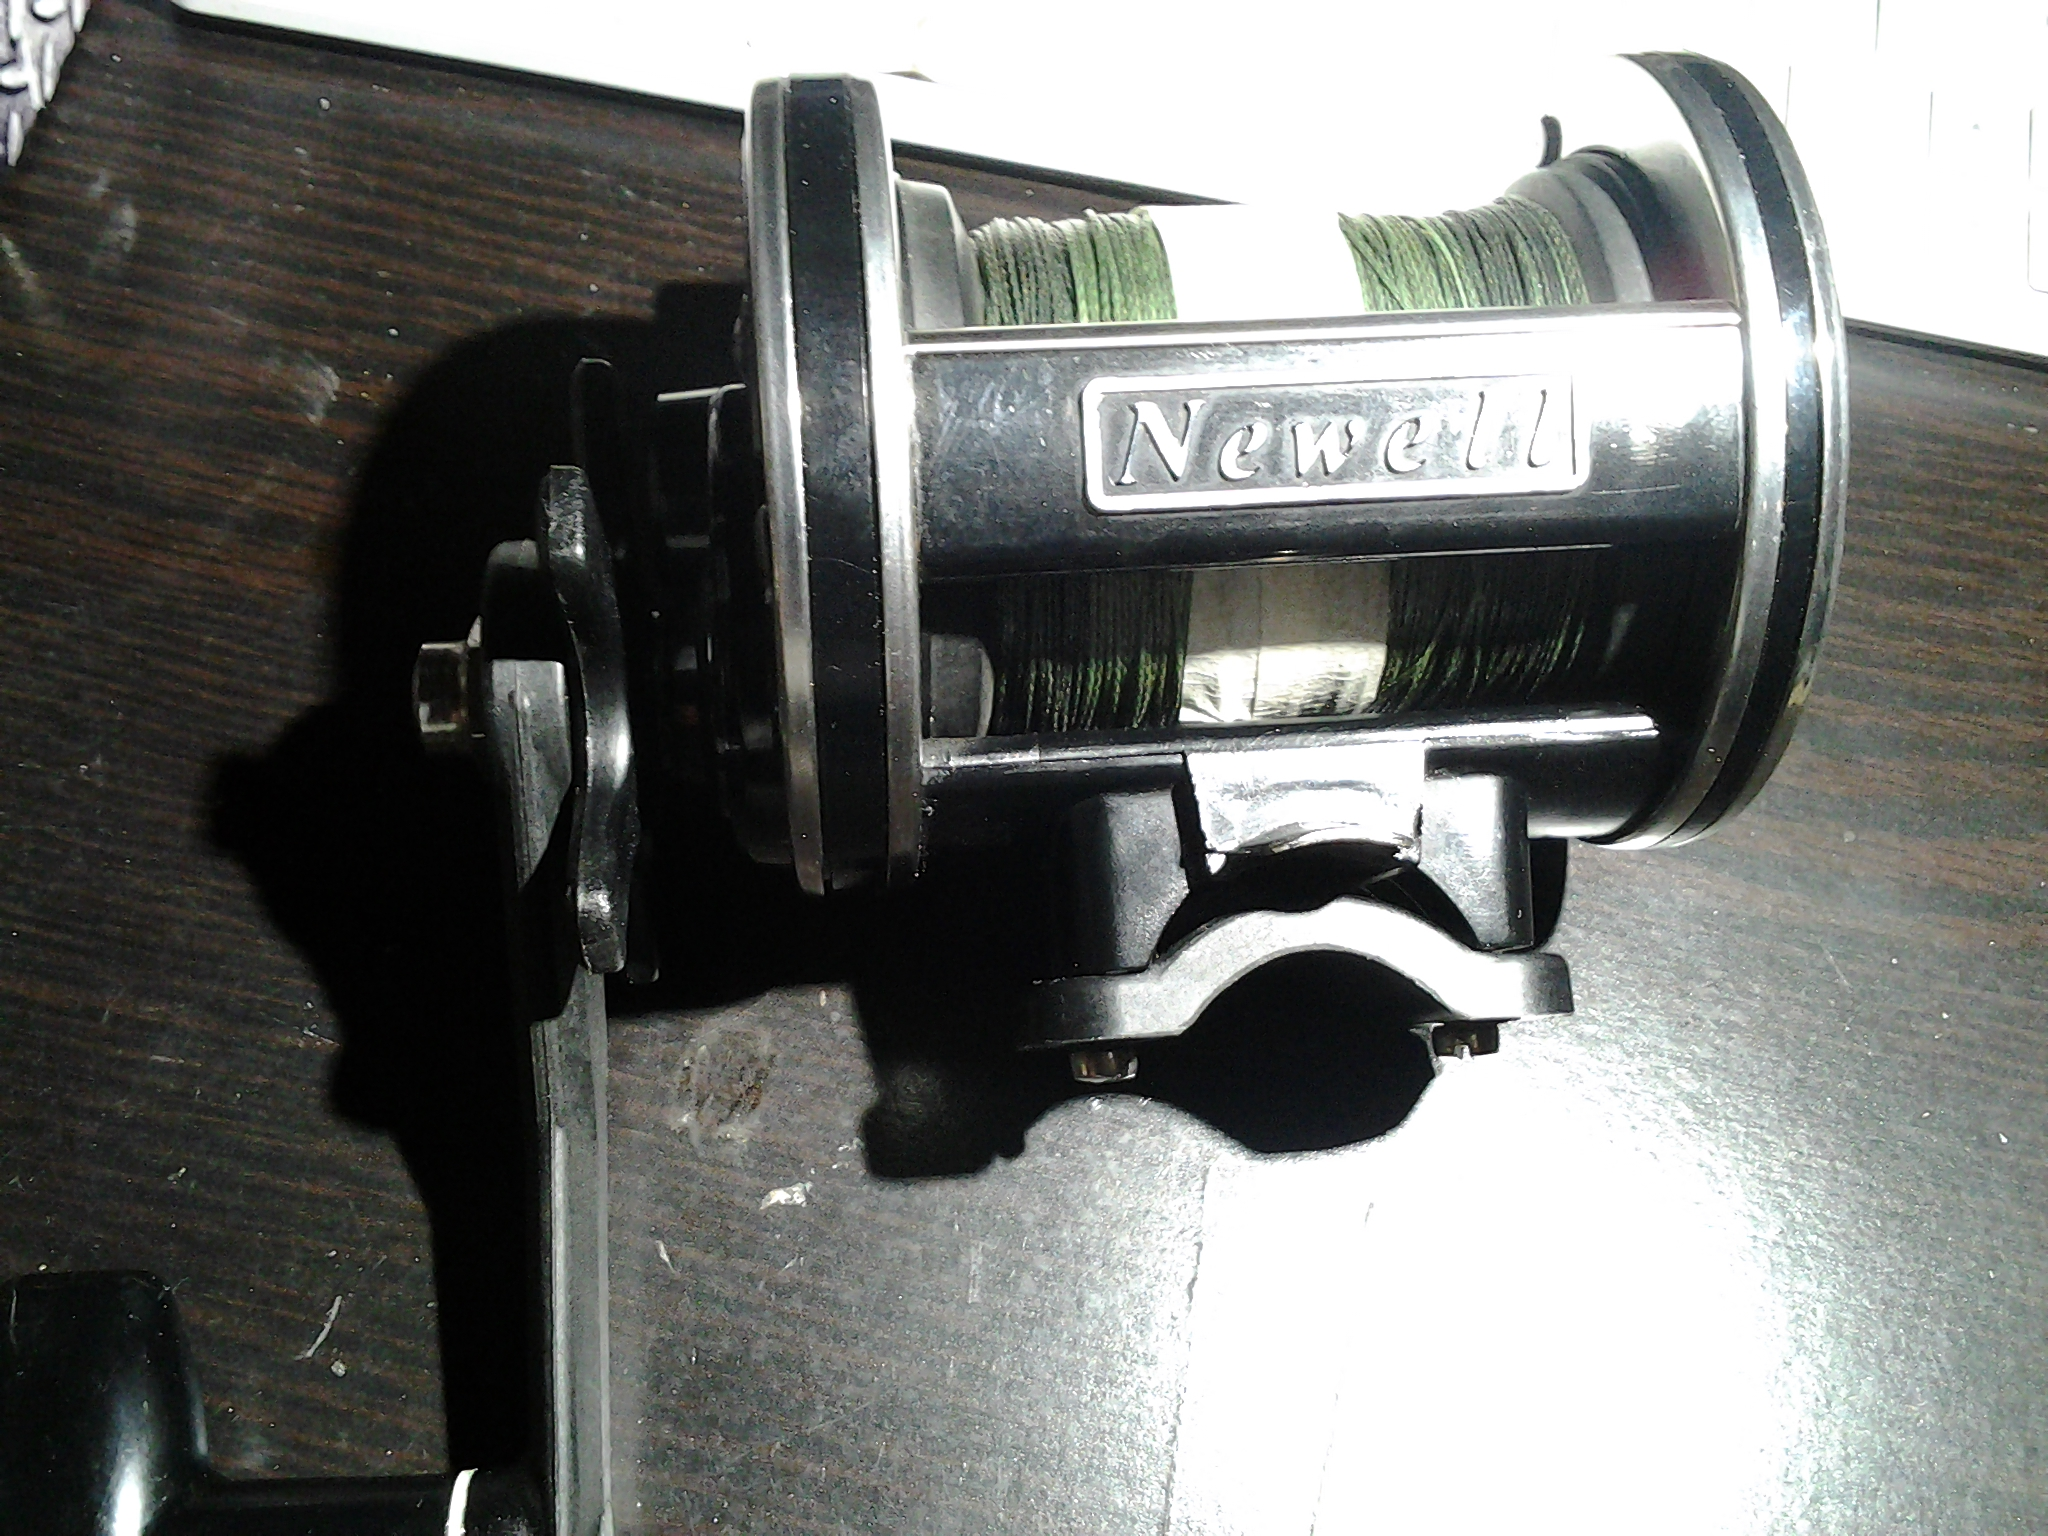 FS Newell S344-5 used twice - General Buy/Sell/Trade Forum - SurfTalk